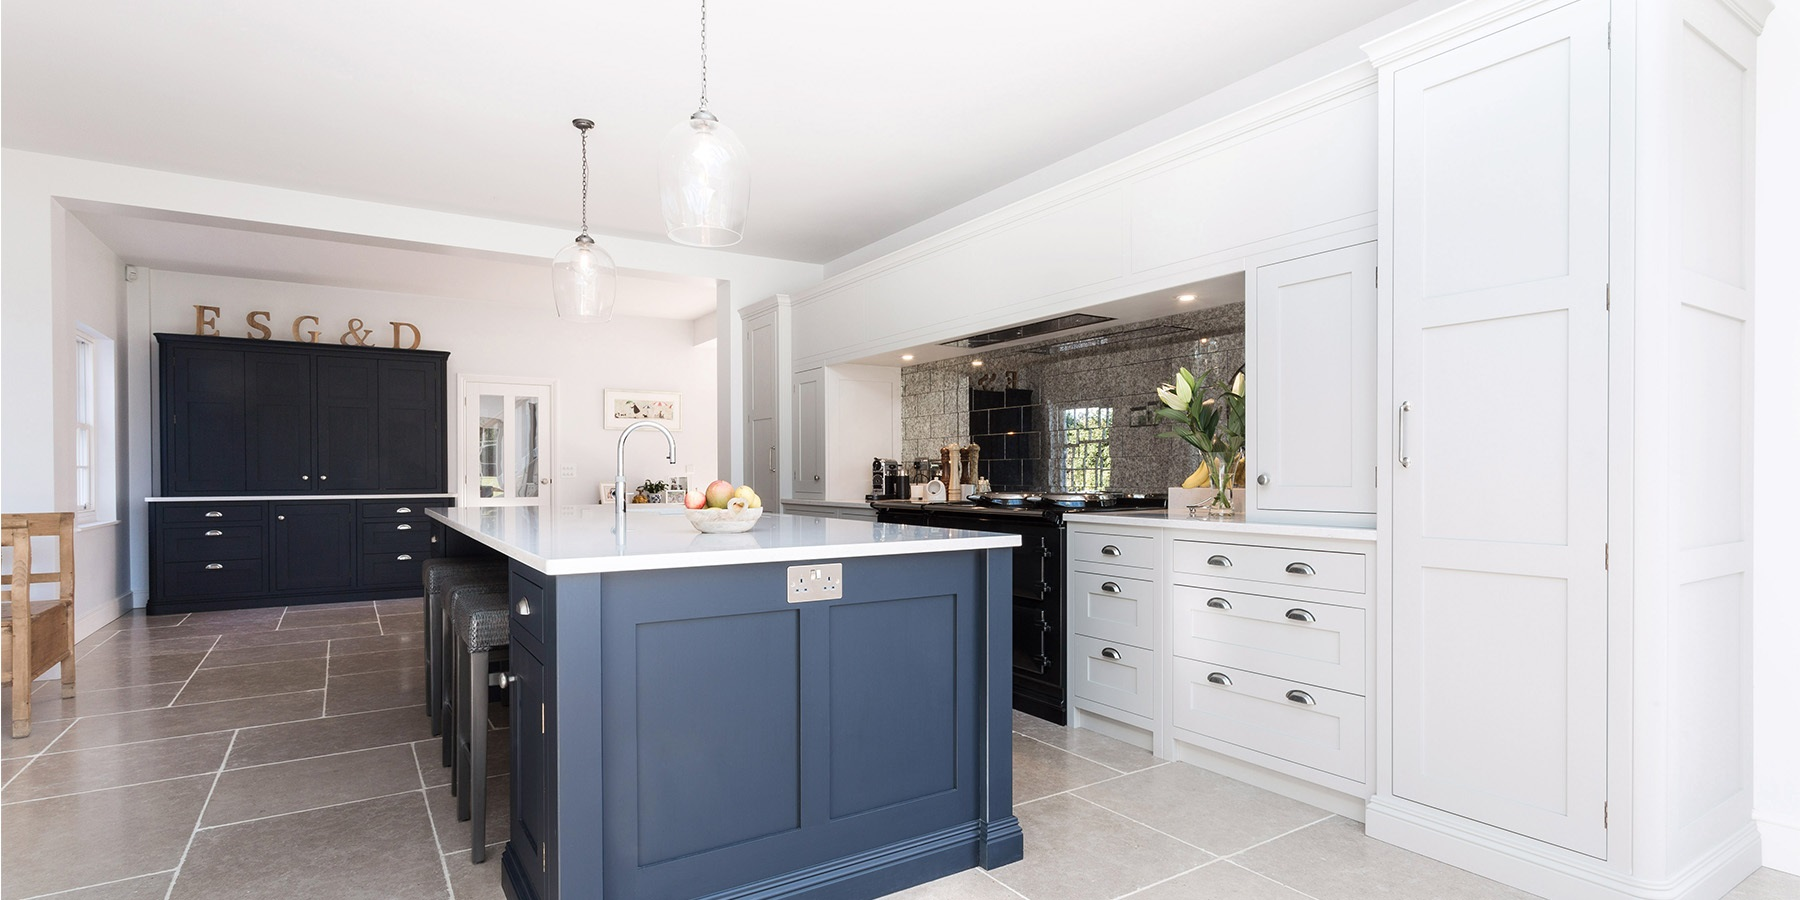 Luxury Open Plan Shaker Kitchen - Burlanes handmade contemporary shaker kitchen in navy and grey, with central island and breakfast pantry.